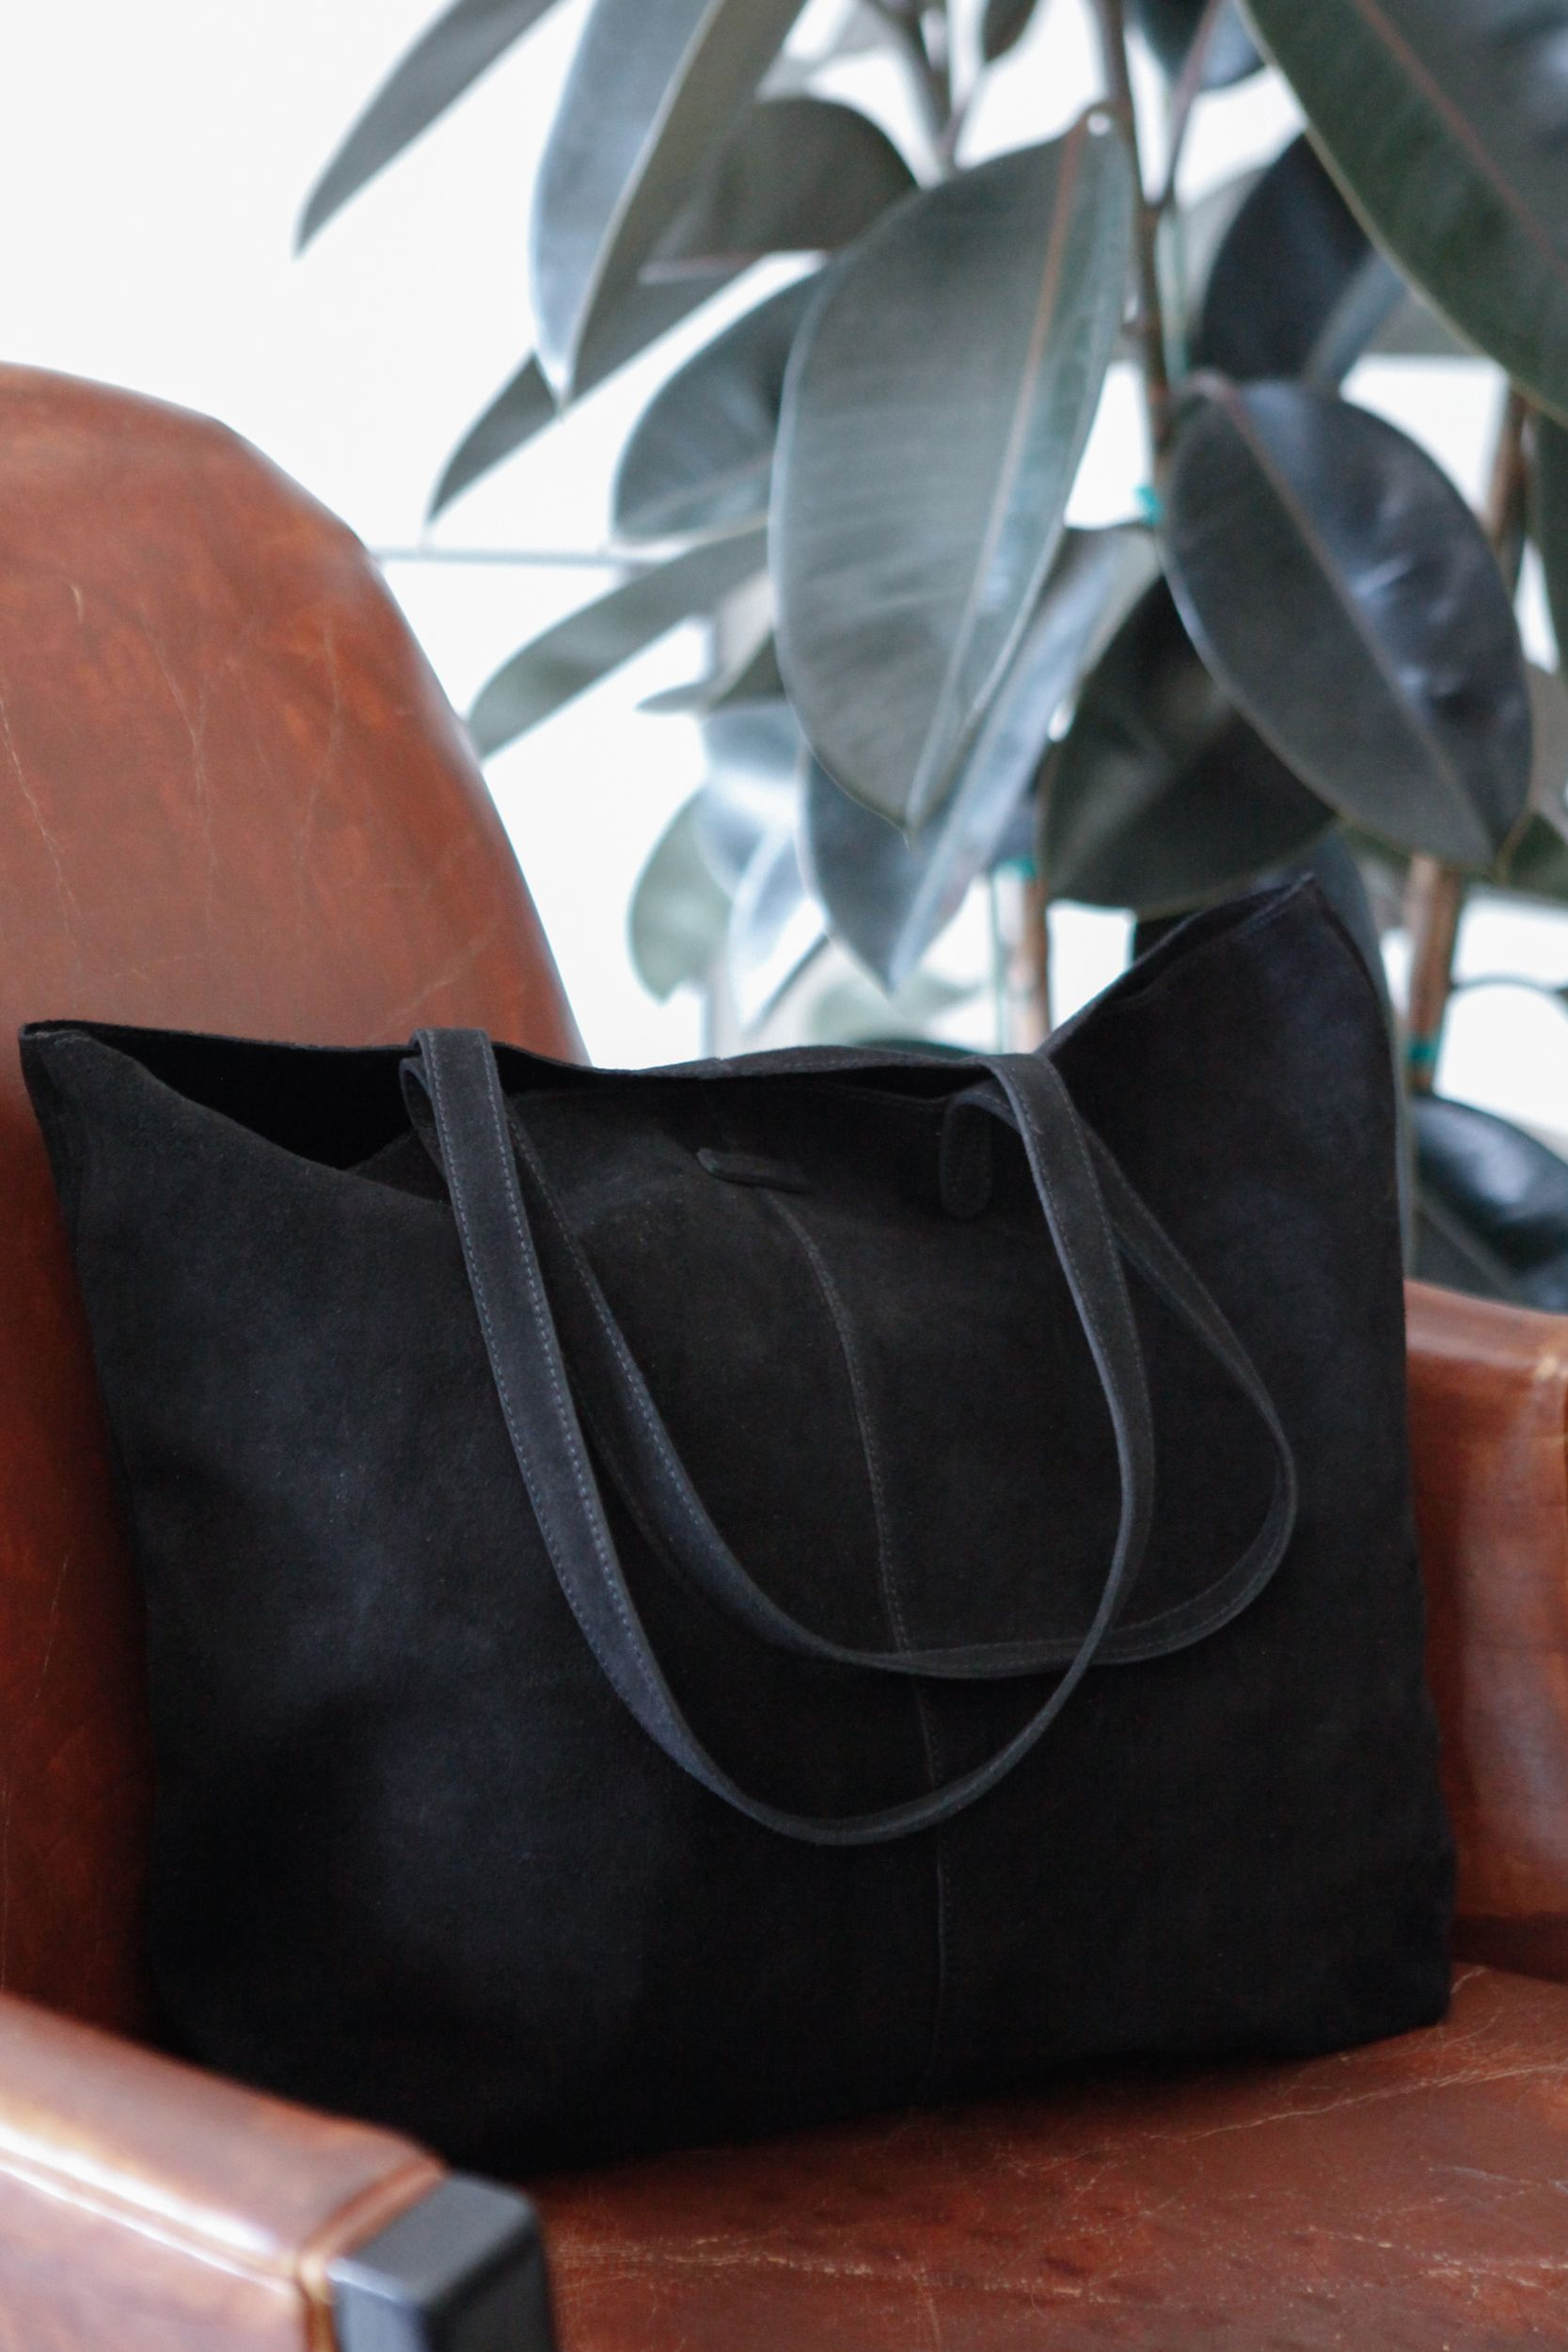 450b6b2c481 Put everything you need in one place with a black suede TOMS Cosmopolitan  tote. Every bag you purchase helps provide a safe birth to a mother and  baby in ...